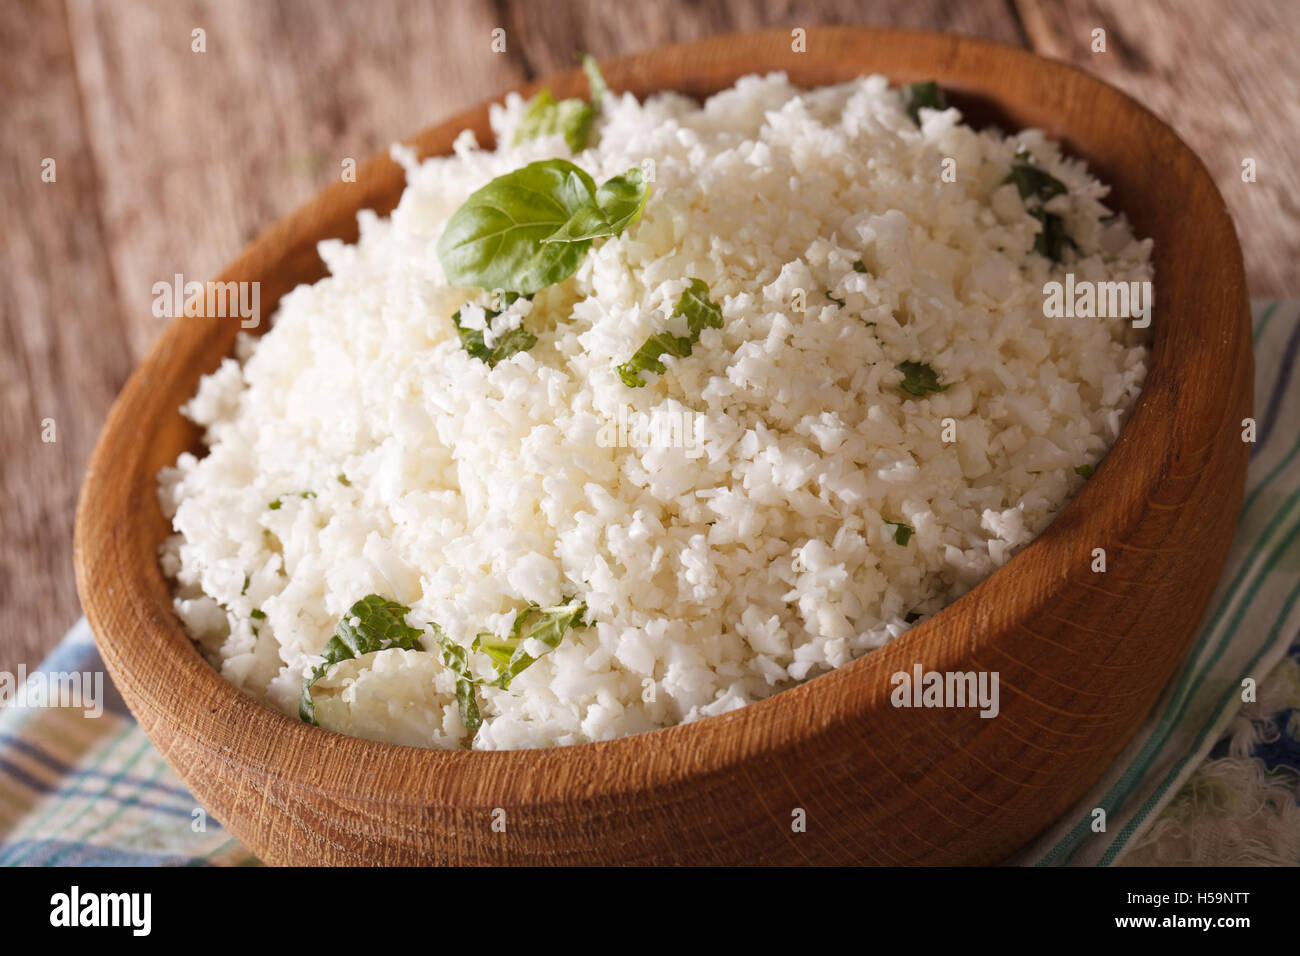 Cauliflower rice with basil close up in a bowl on the table. horizontal - Stock Image